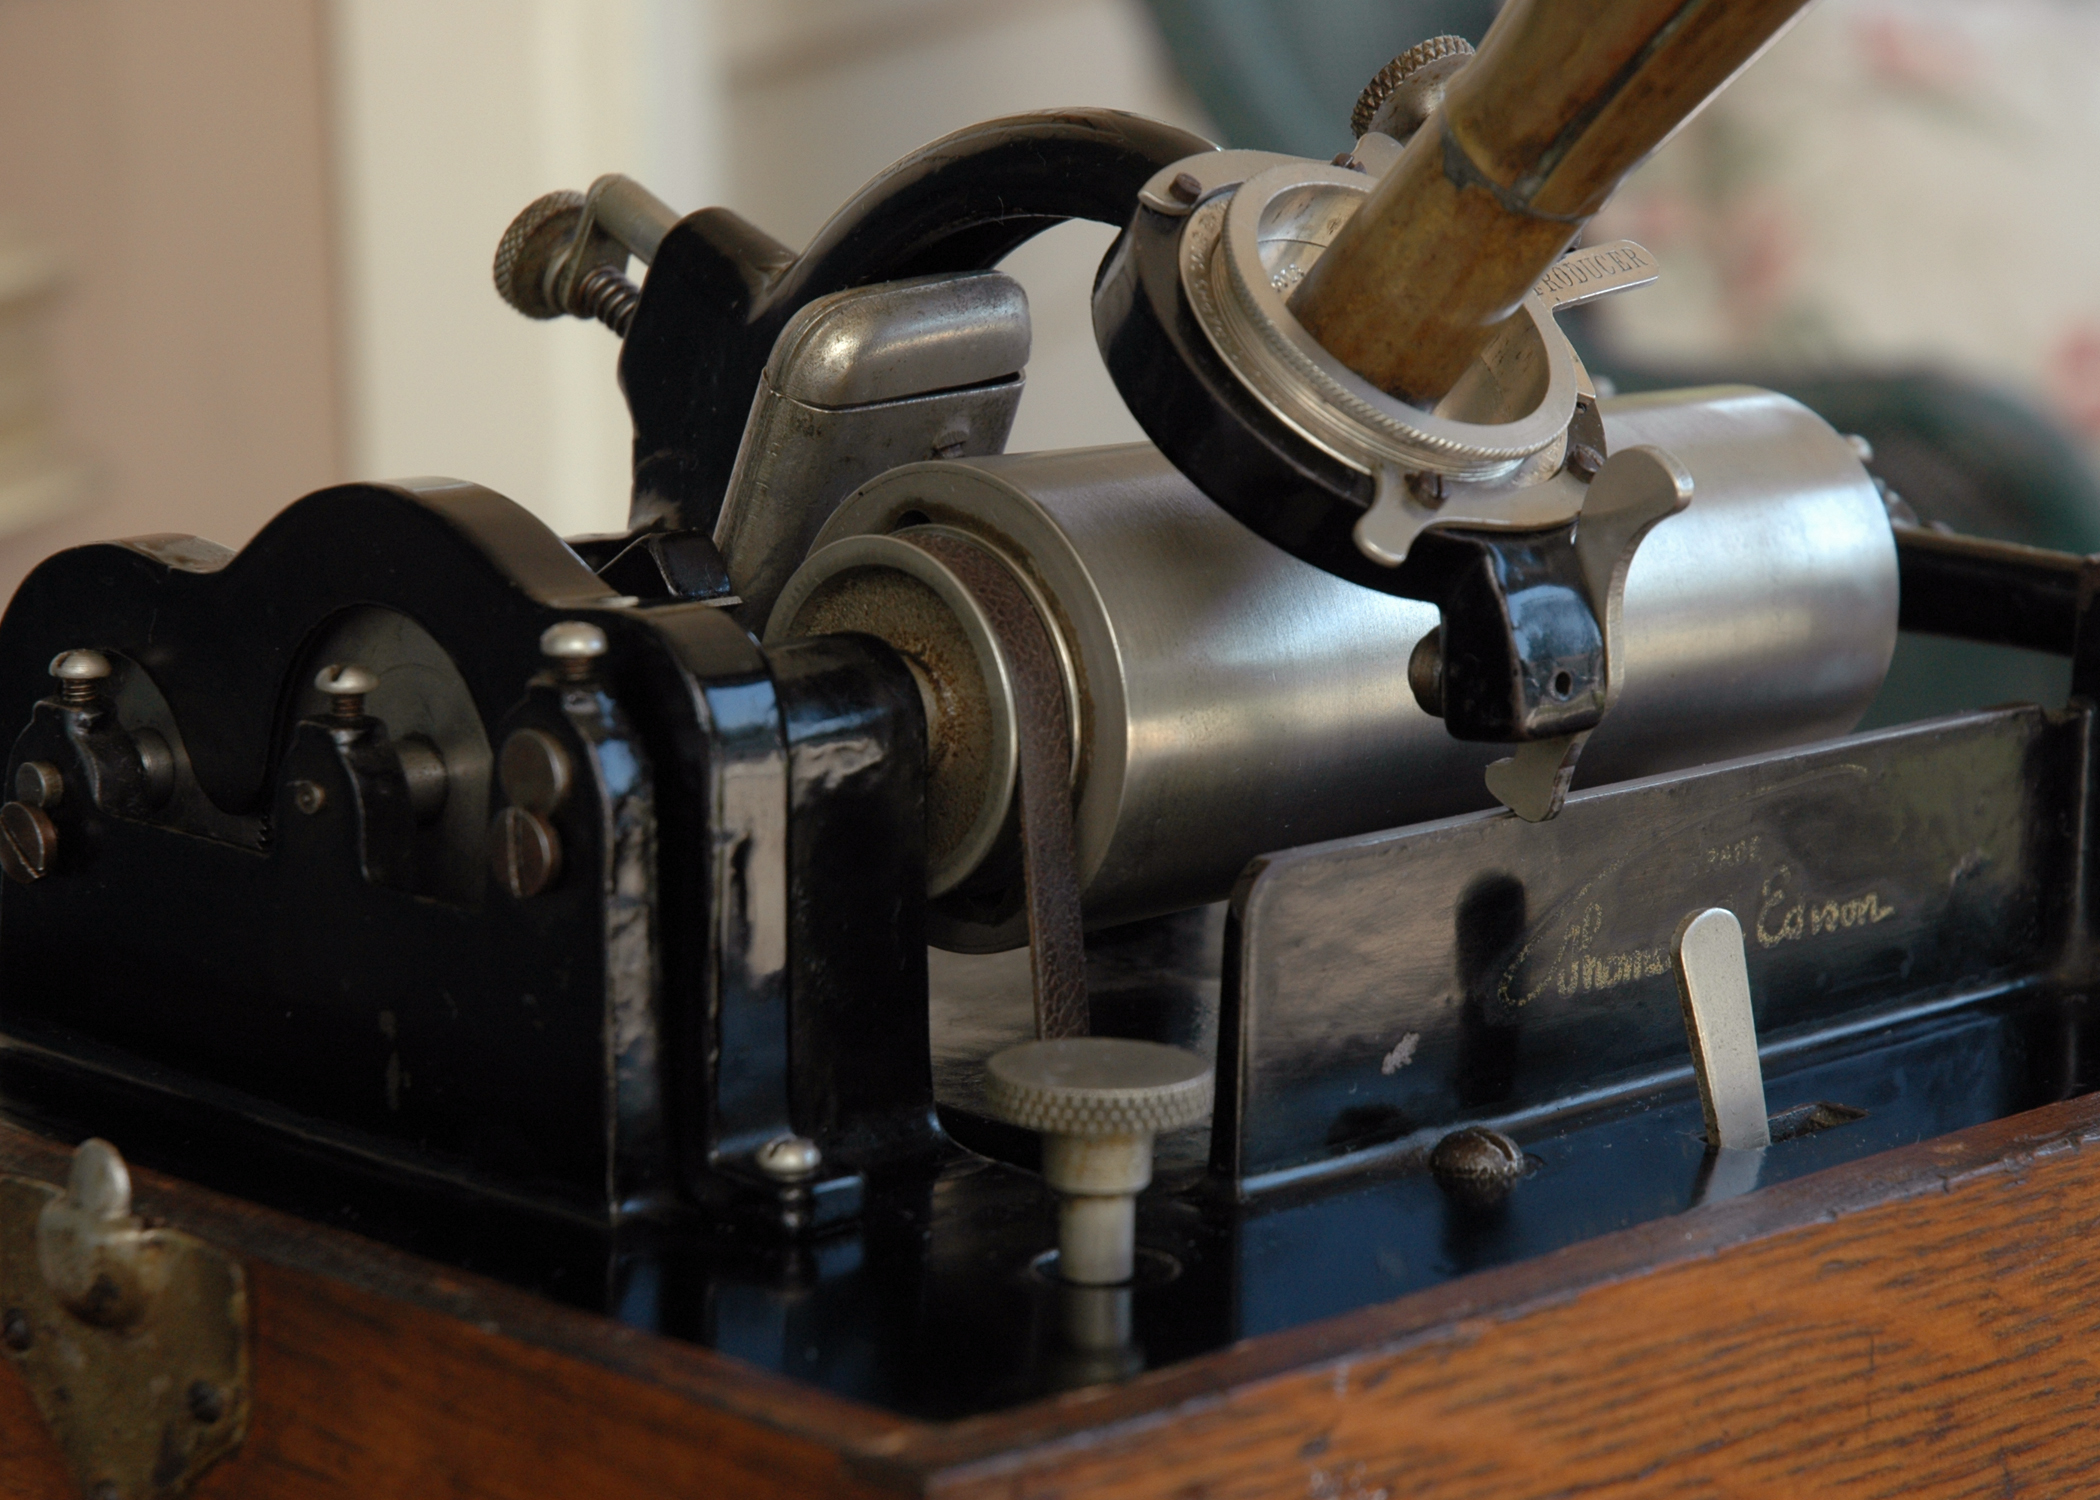 Spotters Guide to the Edison Standard Phonograph  The